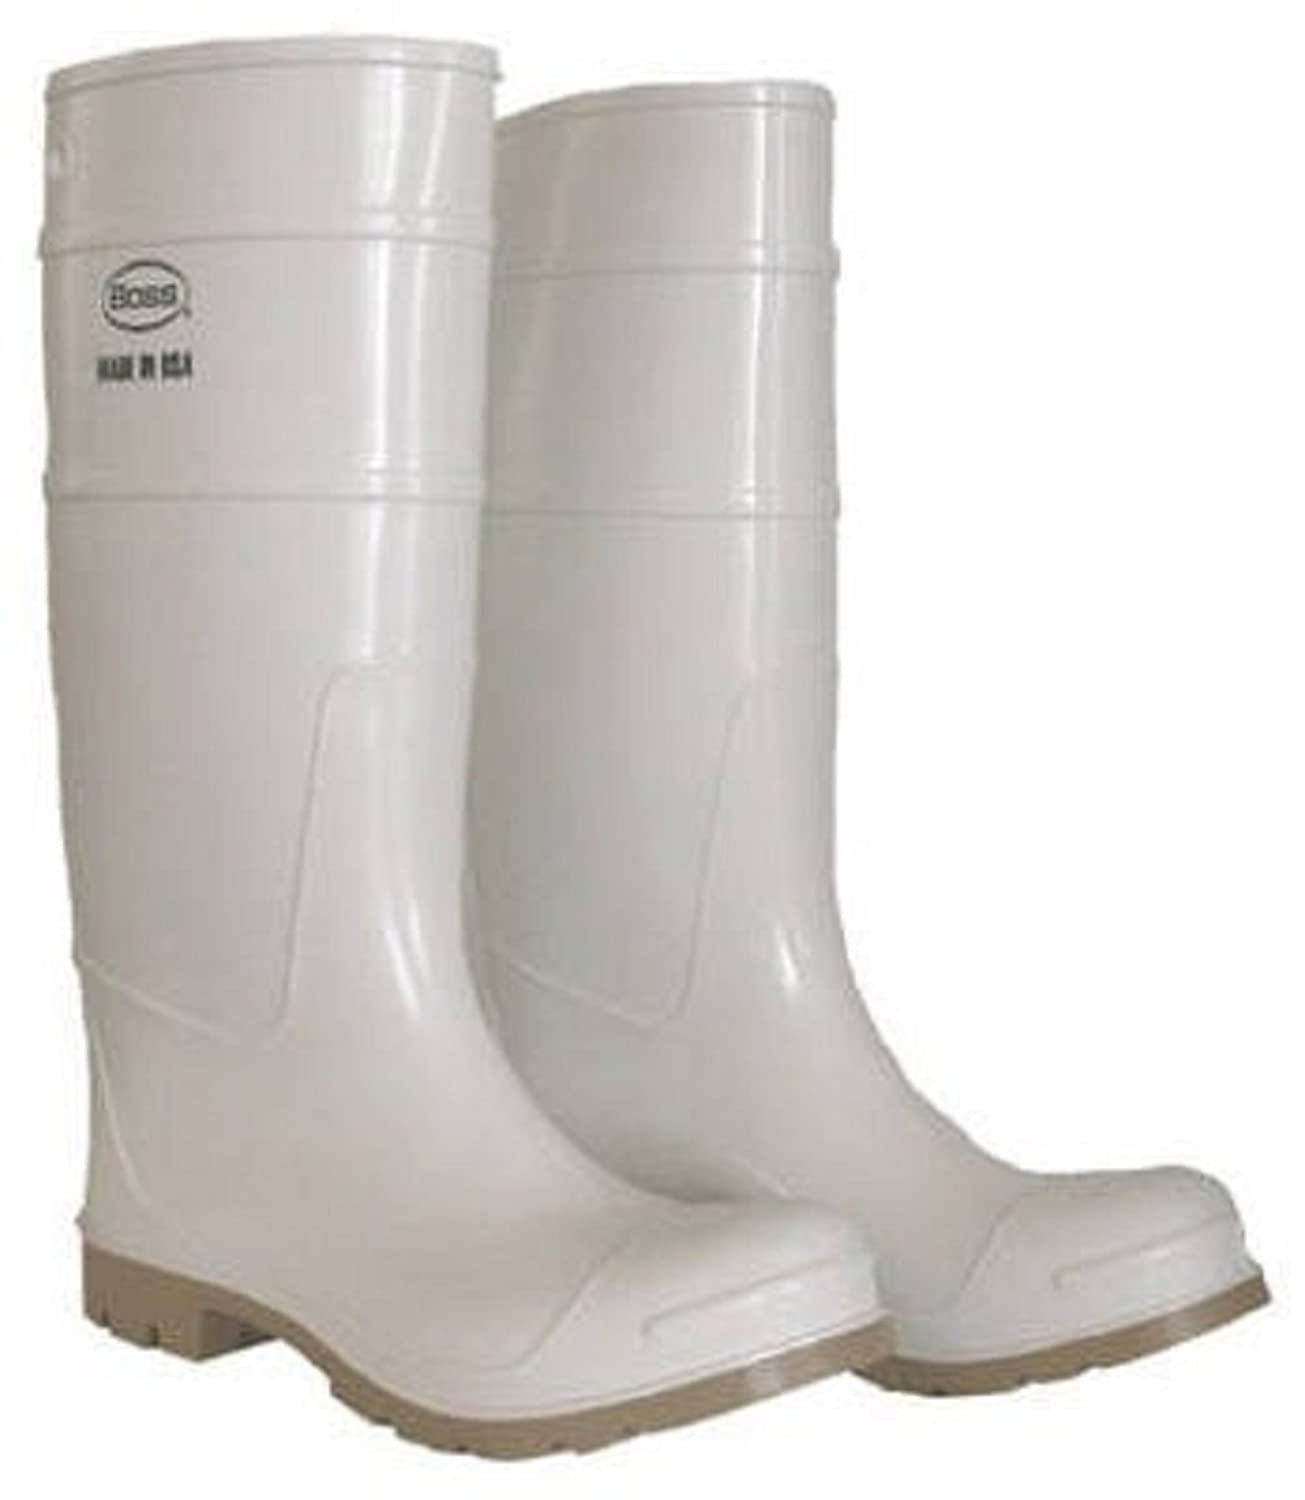 cheap Boss Mfg 2PP192406 16 in. PVC Over The Sock Boot - Size 644; White on sale